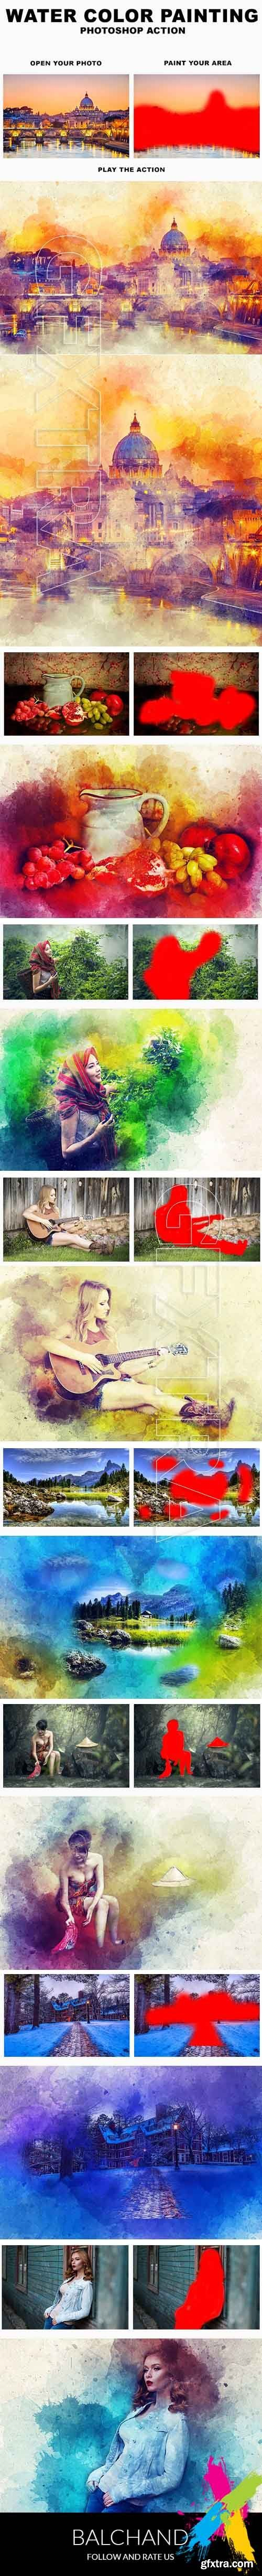 Graphicriver - Water Color Painting Photoshop Action 20258661